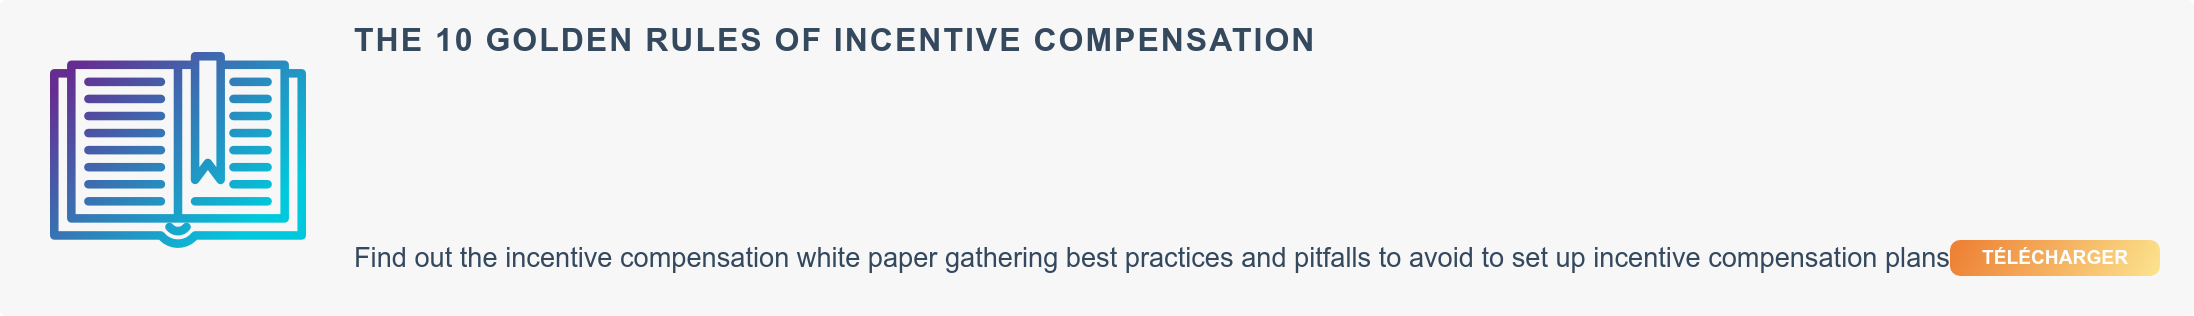 The 10 golden rules of incentive compensation Find out the incentive  compensation white paper gathering best practices and pitfalls to avoid to set  up incentive compensation plans  Download